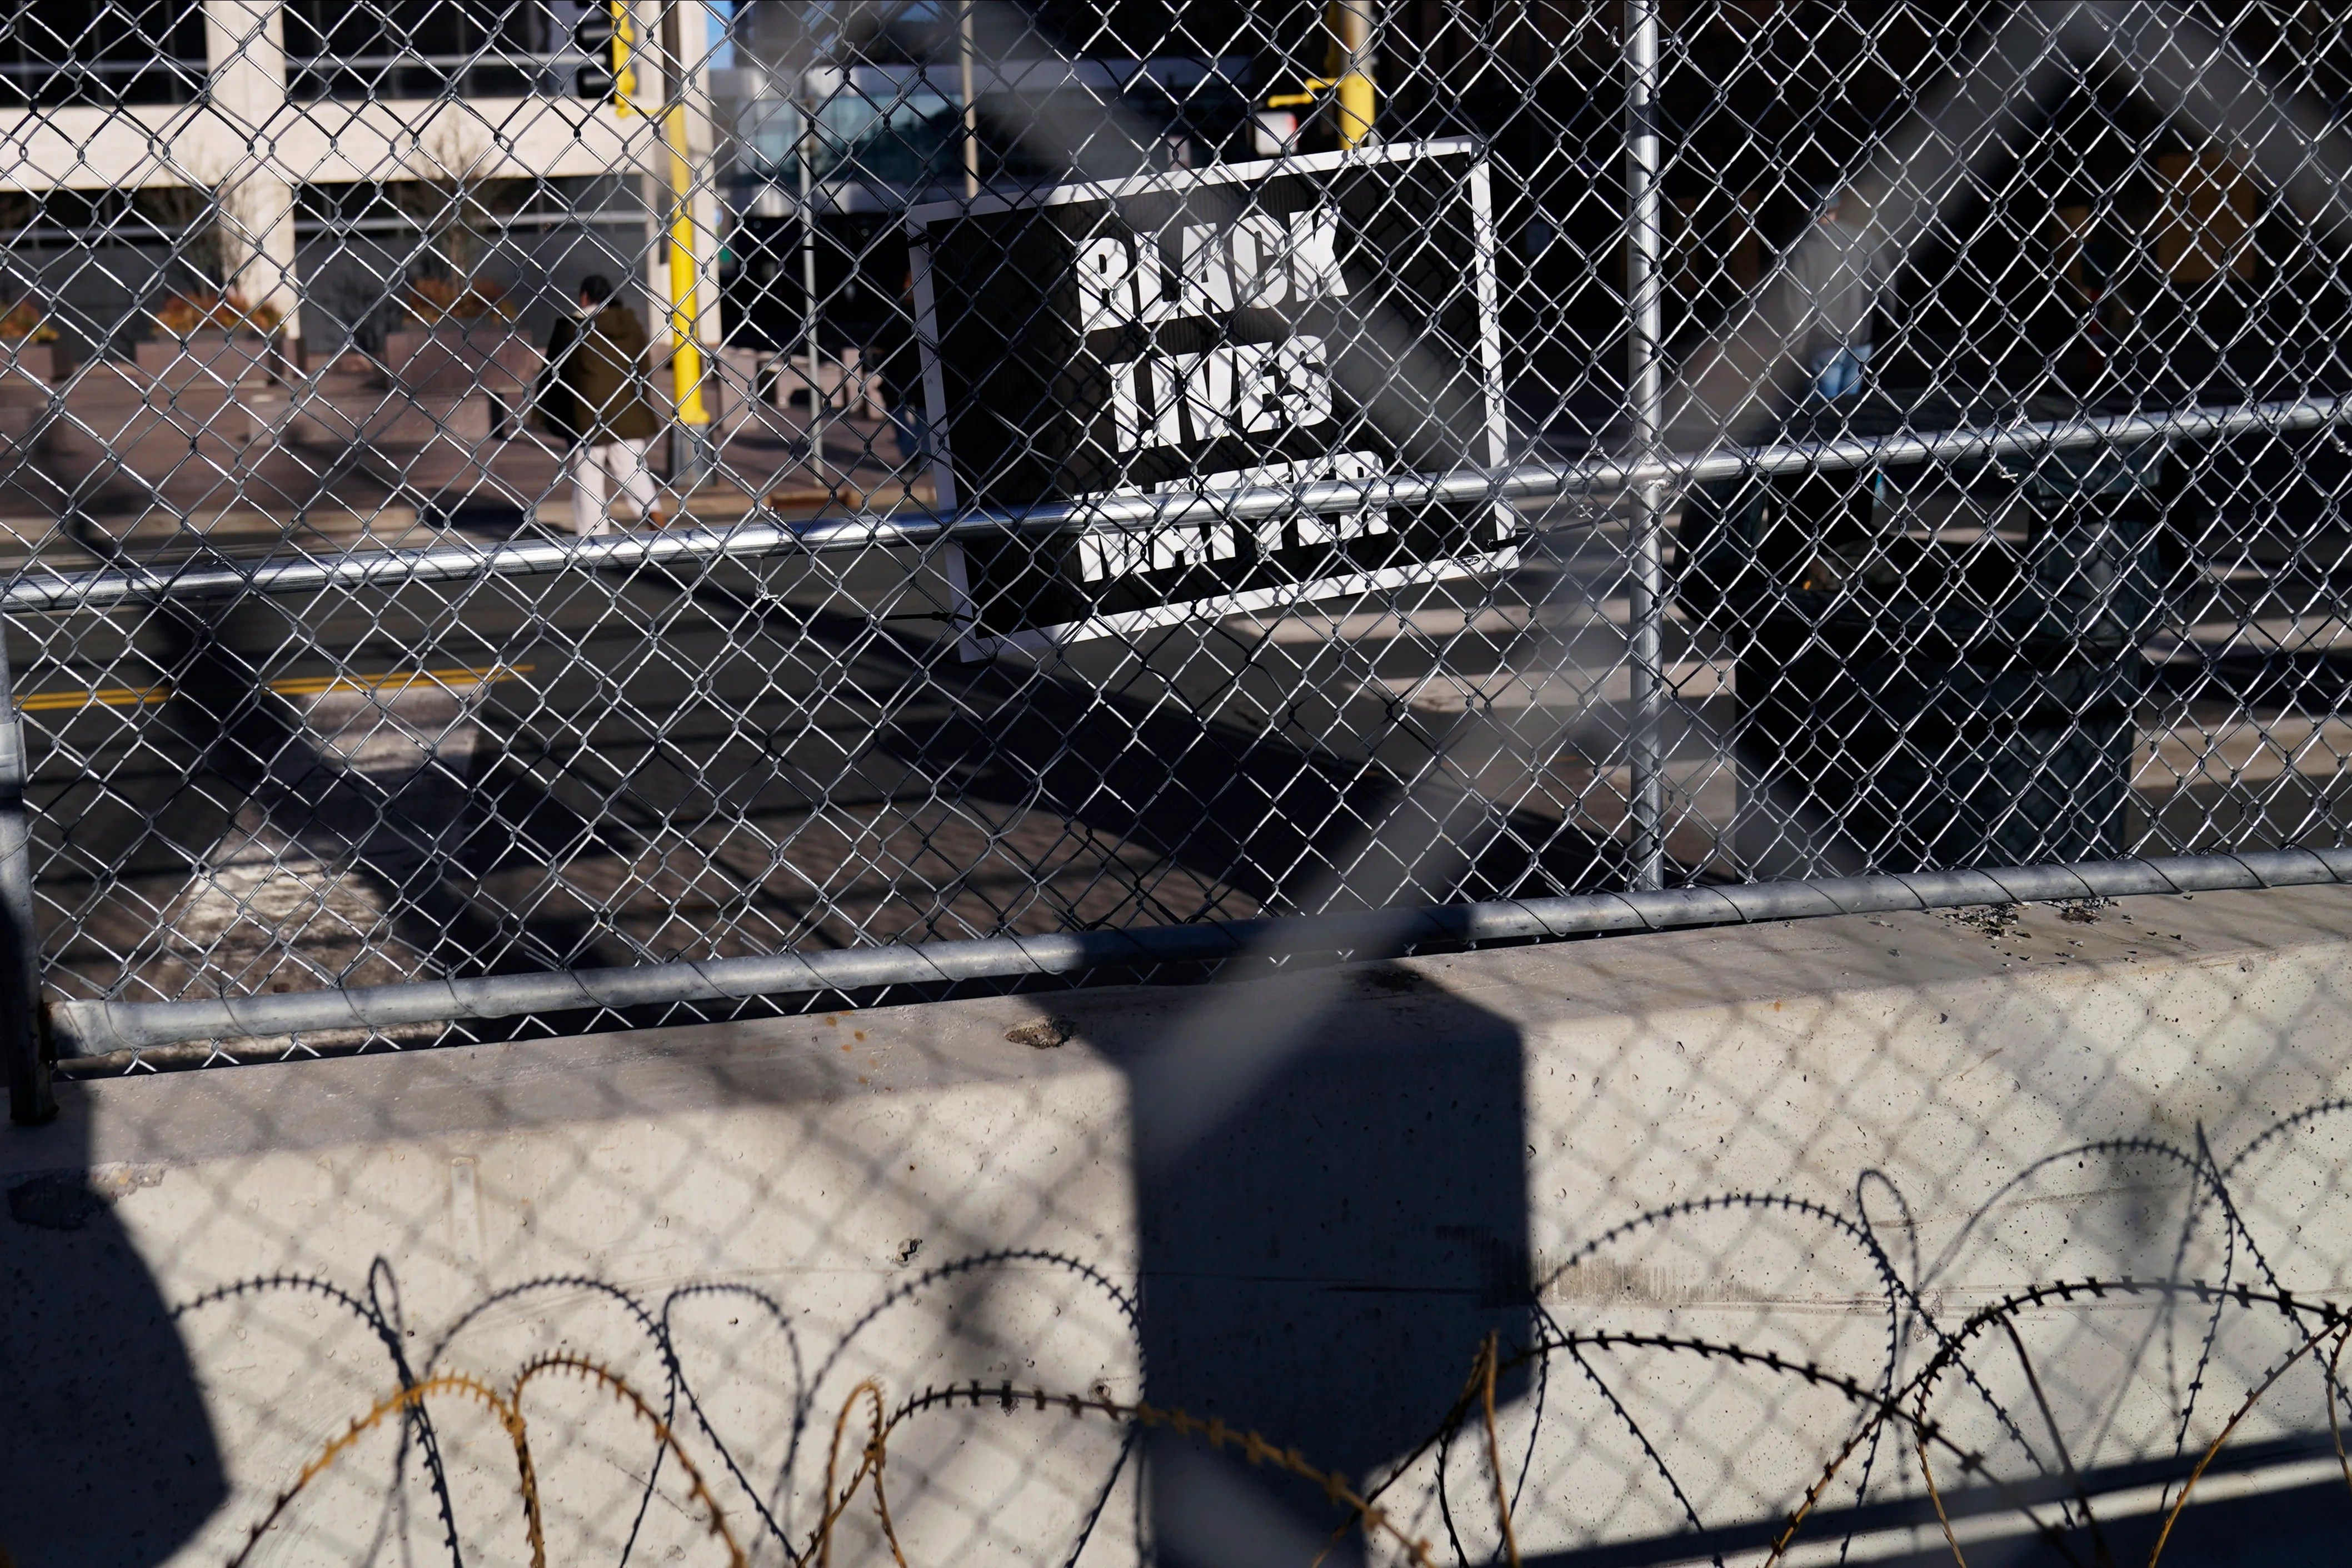 A lone Black Lives Matter sign hangs on the fence surrounding the Hennepin County Government Center, Thursday, March 18, 2021, in Minneapolis where the trial for former Minneapolis police officer Derek Chauvin continues with jury selection. Chauvin is charged with murder in the death of George Floyd during an arrest last May in Minneapolis.